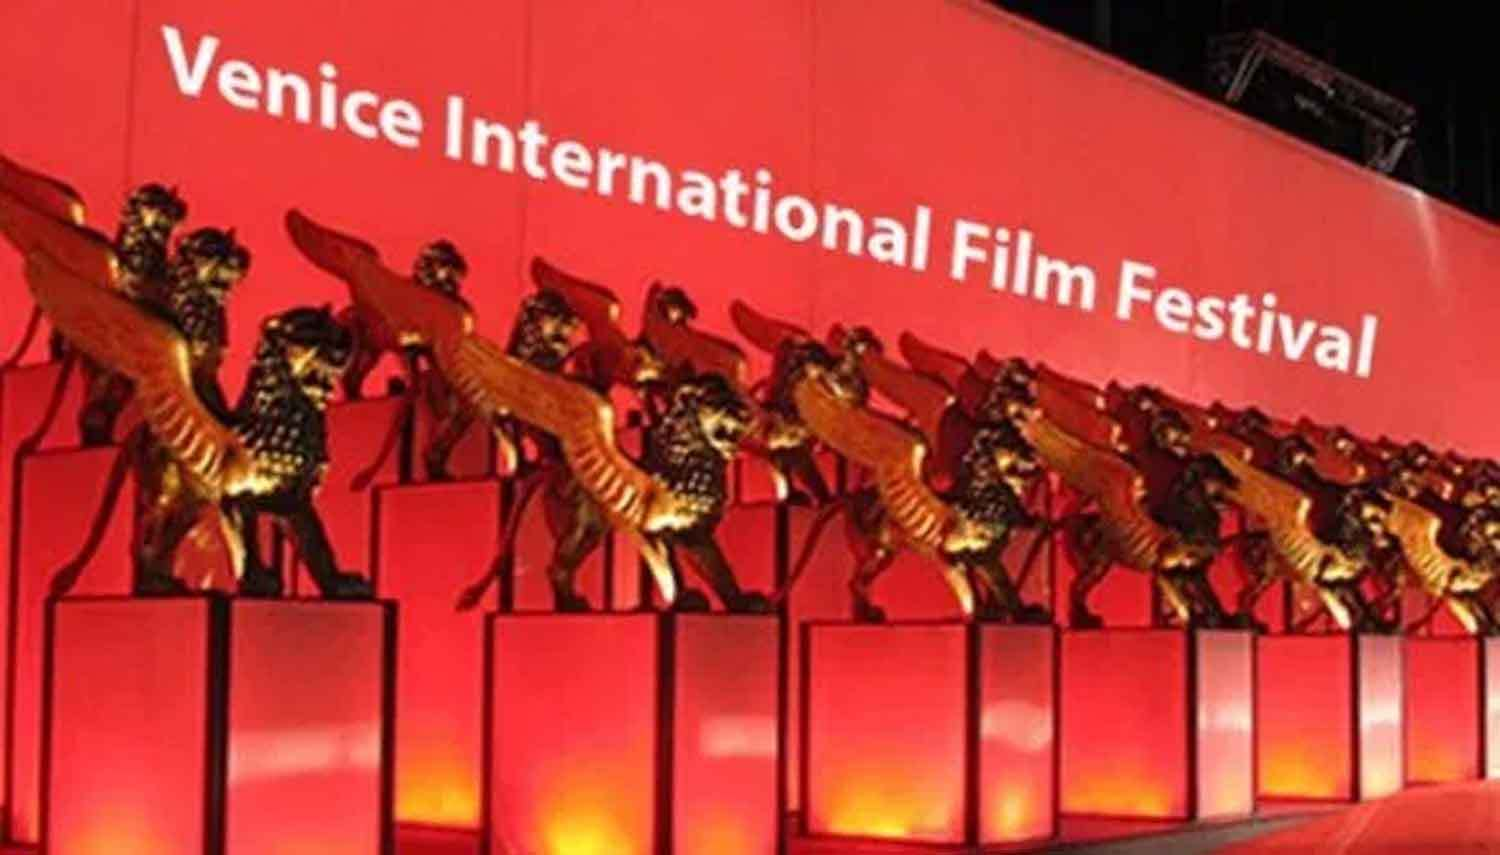 Venice film festival opens under cloud of controversy